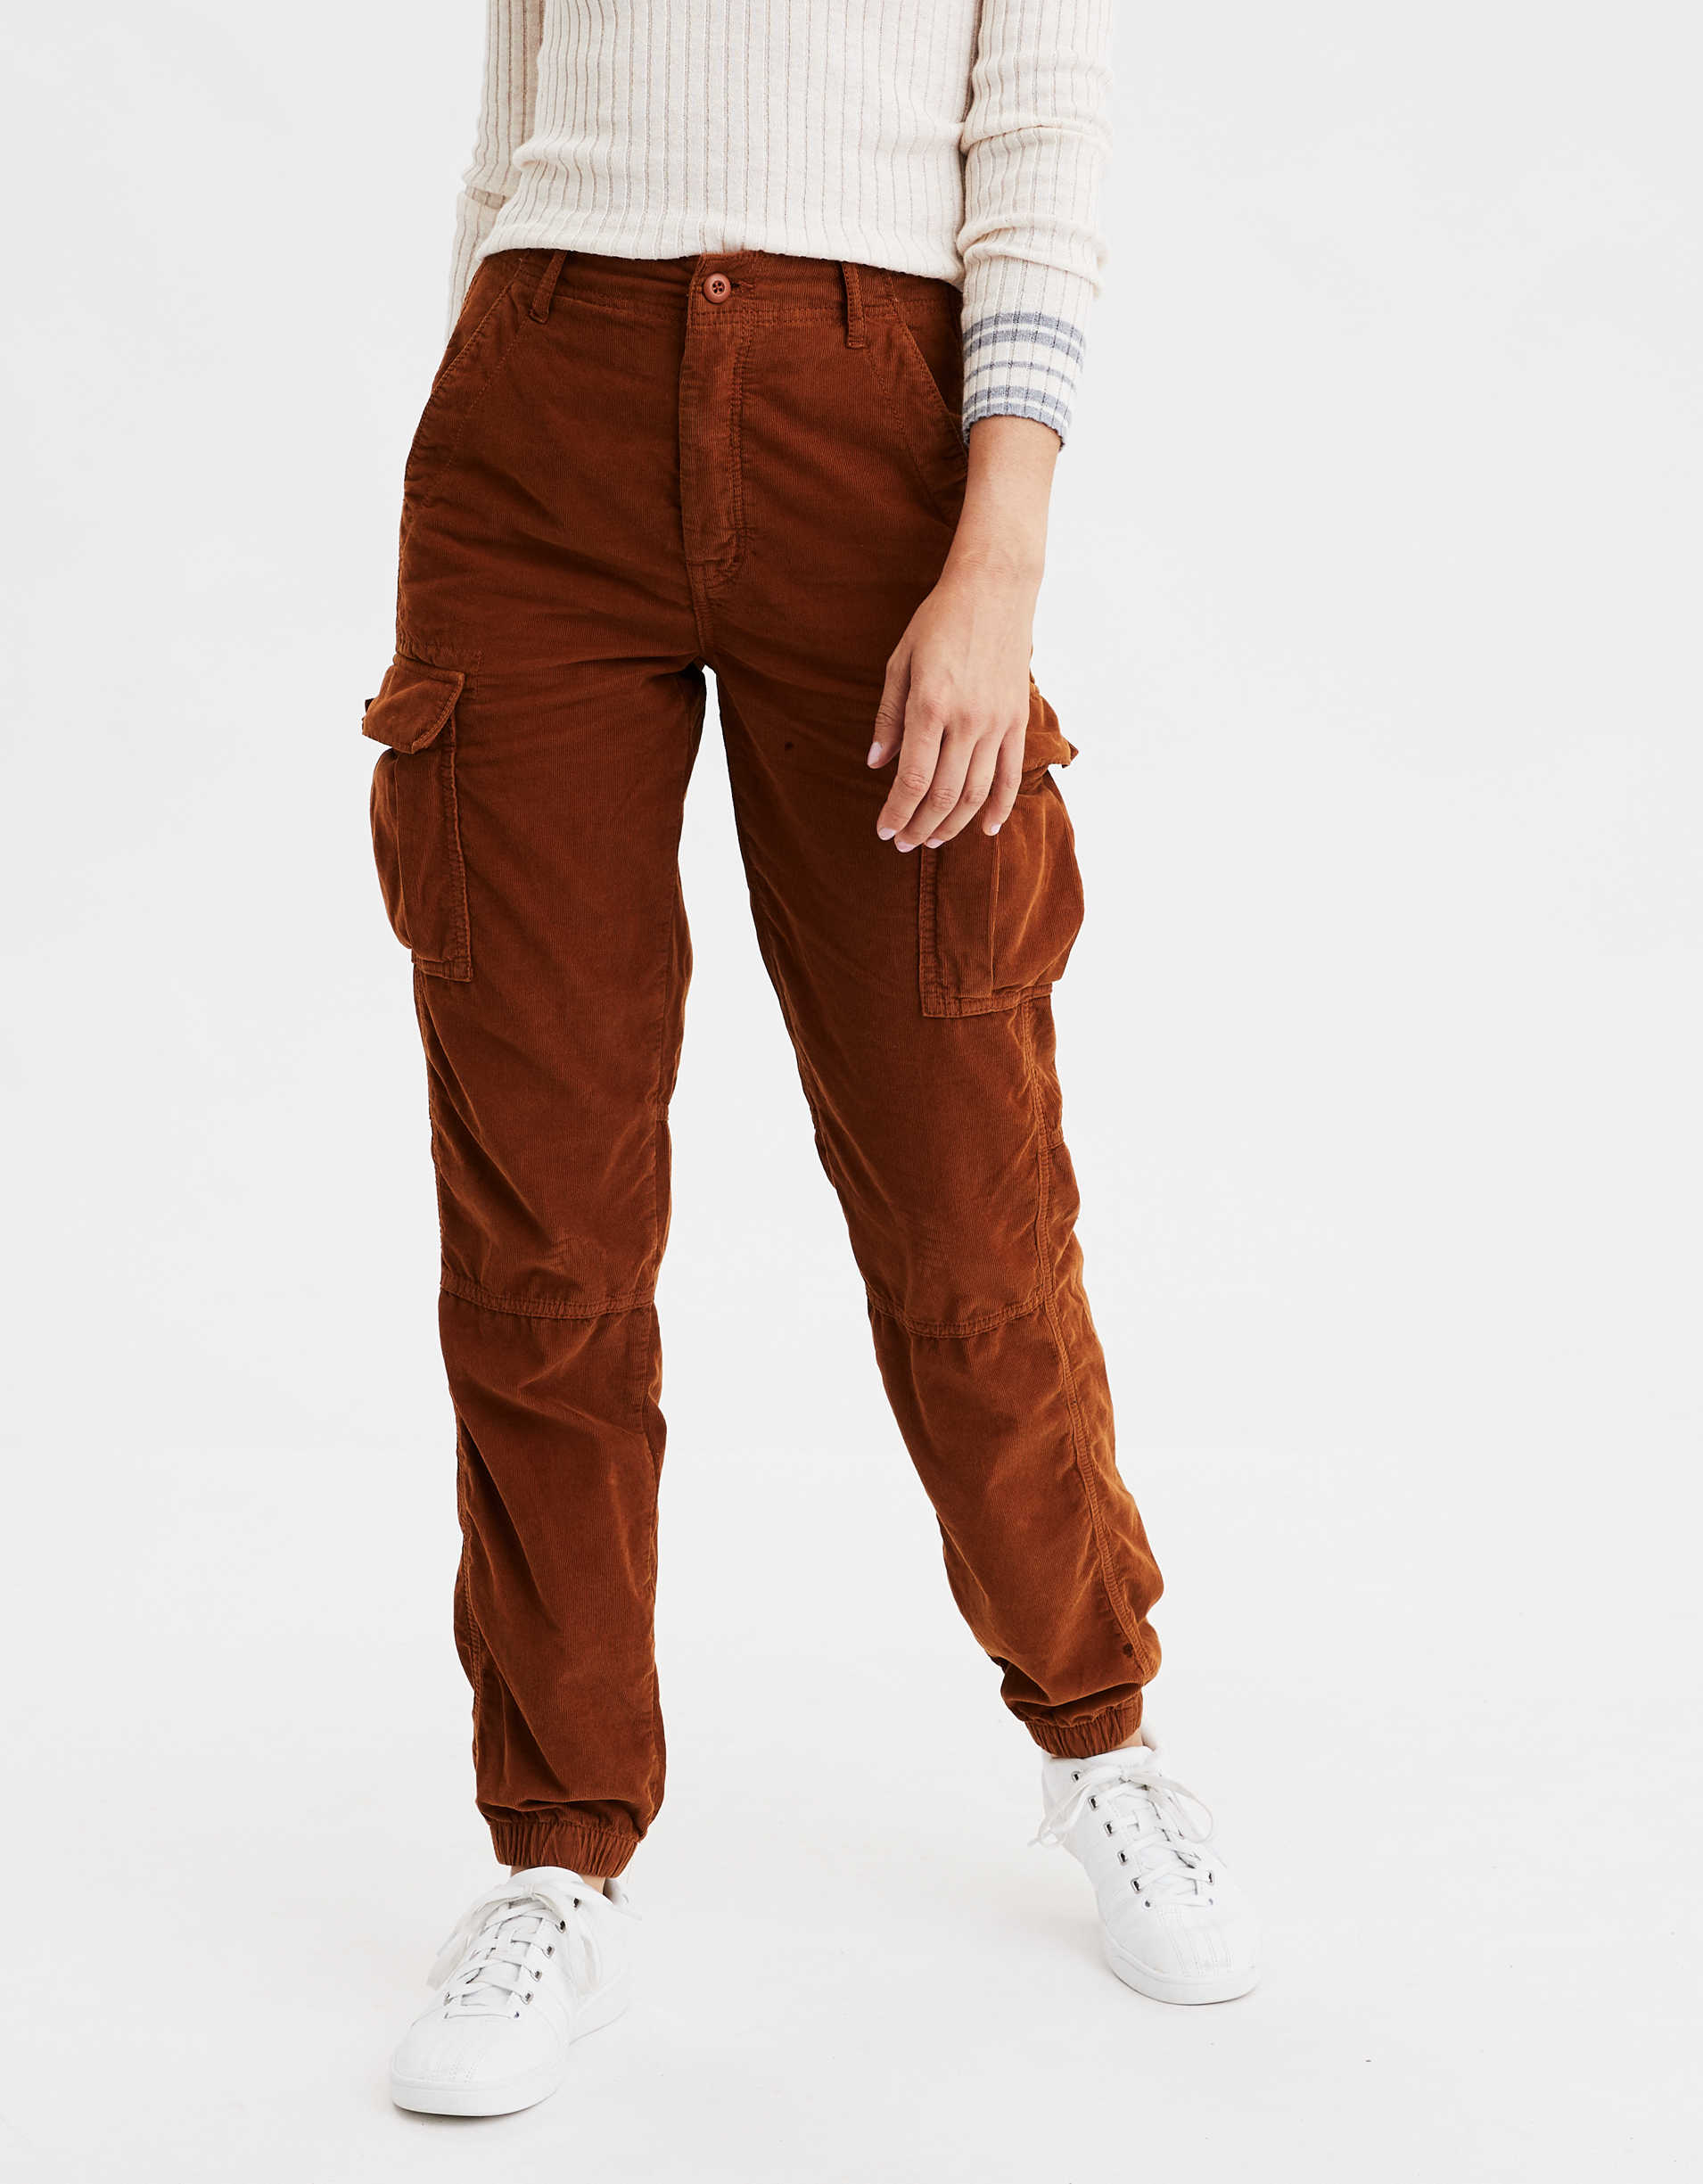 AE Super High-Waisted Corduroy Cargo Jogger Pant